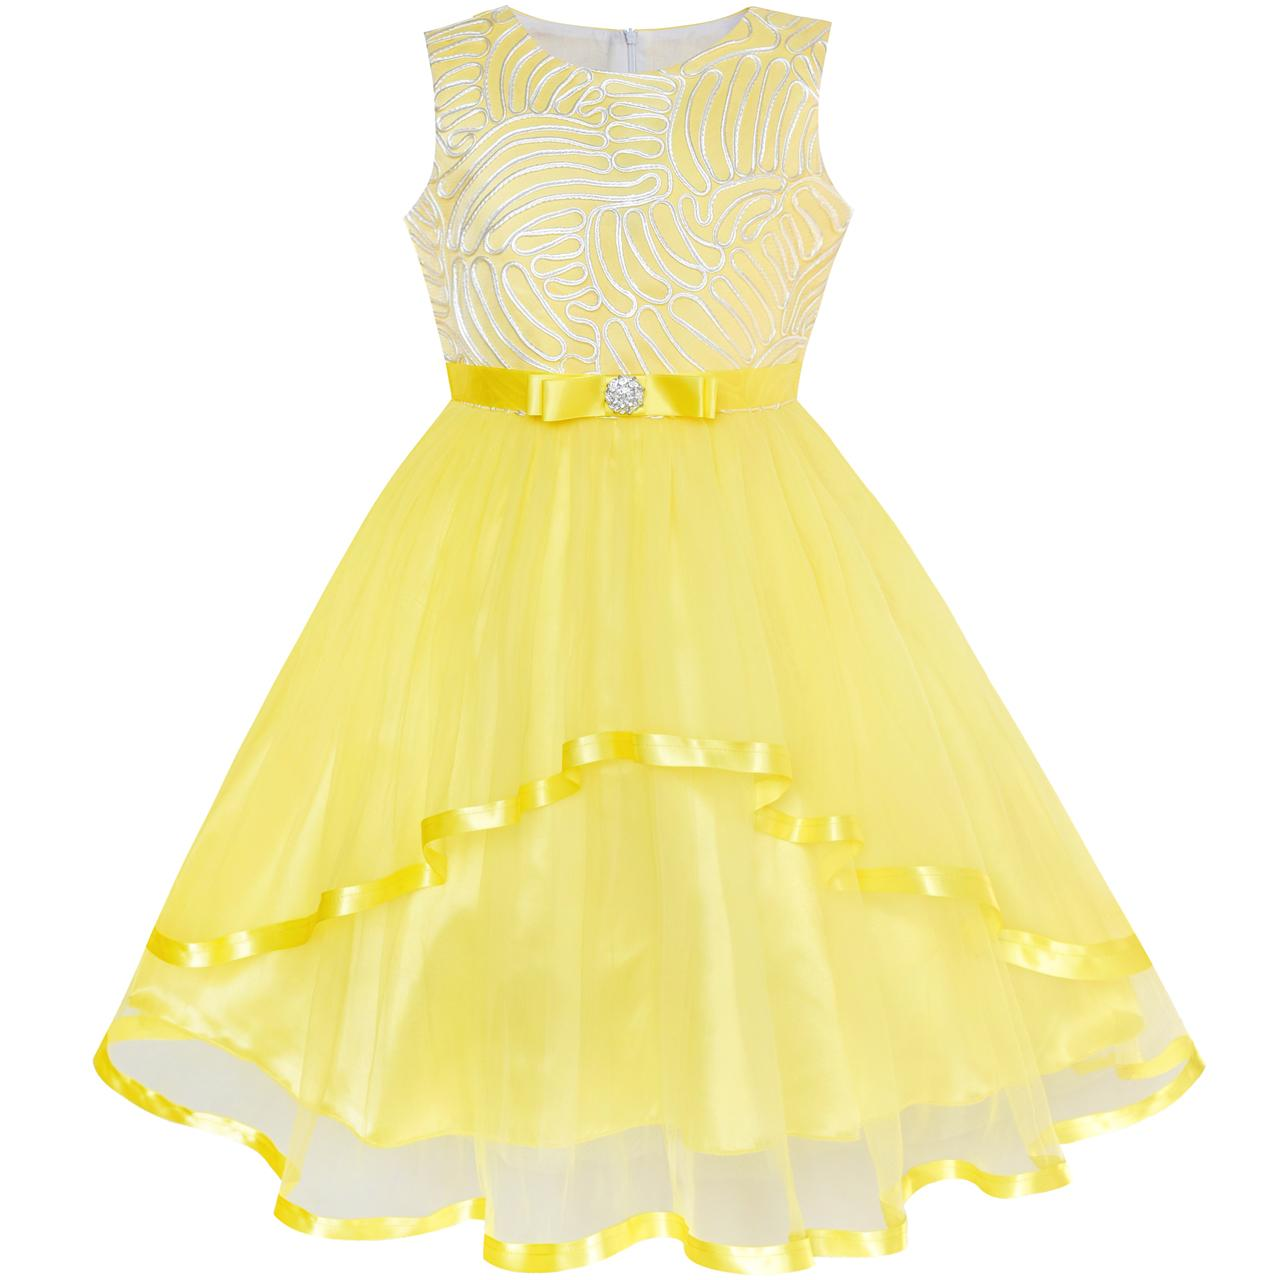 Sunny Fashion Flower Girl Dress Yellow Belted Wedding Party Bridesmaid 2018 Summer Princess Dresses Girl Clothes Size 4-12 patch pocket curved hem belted dress